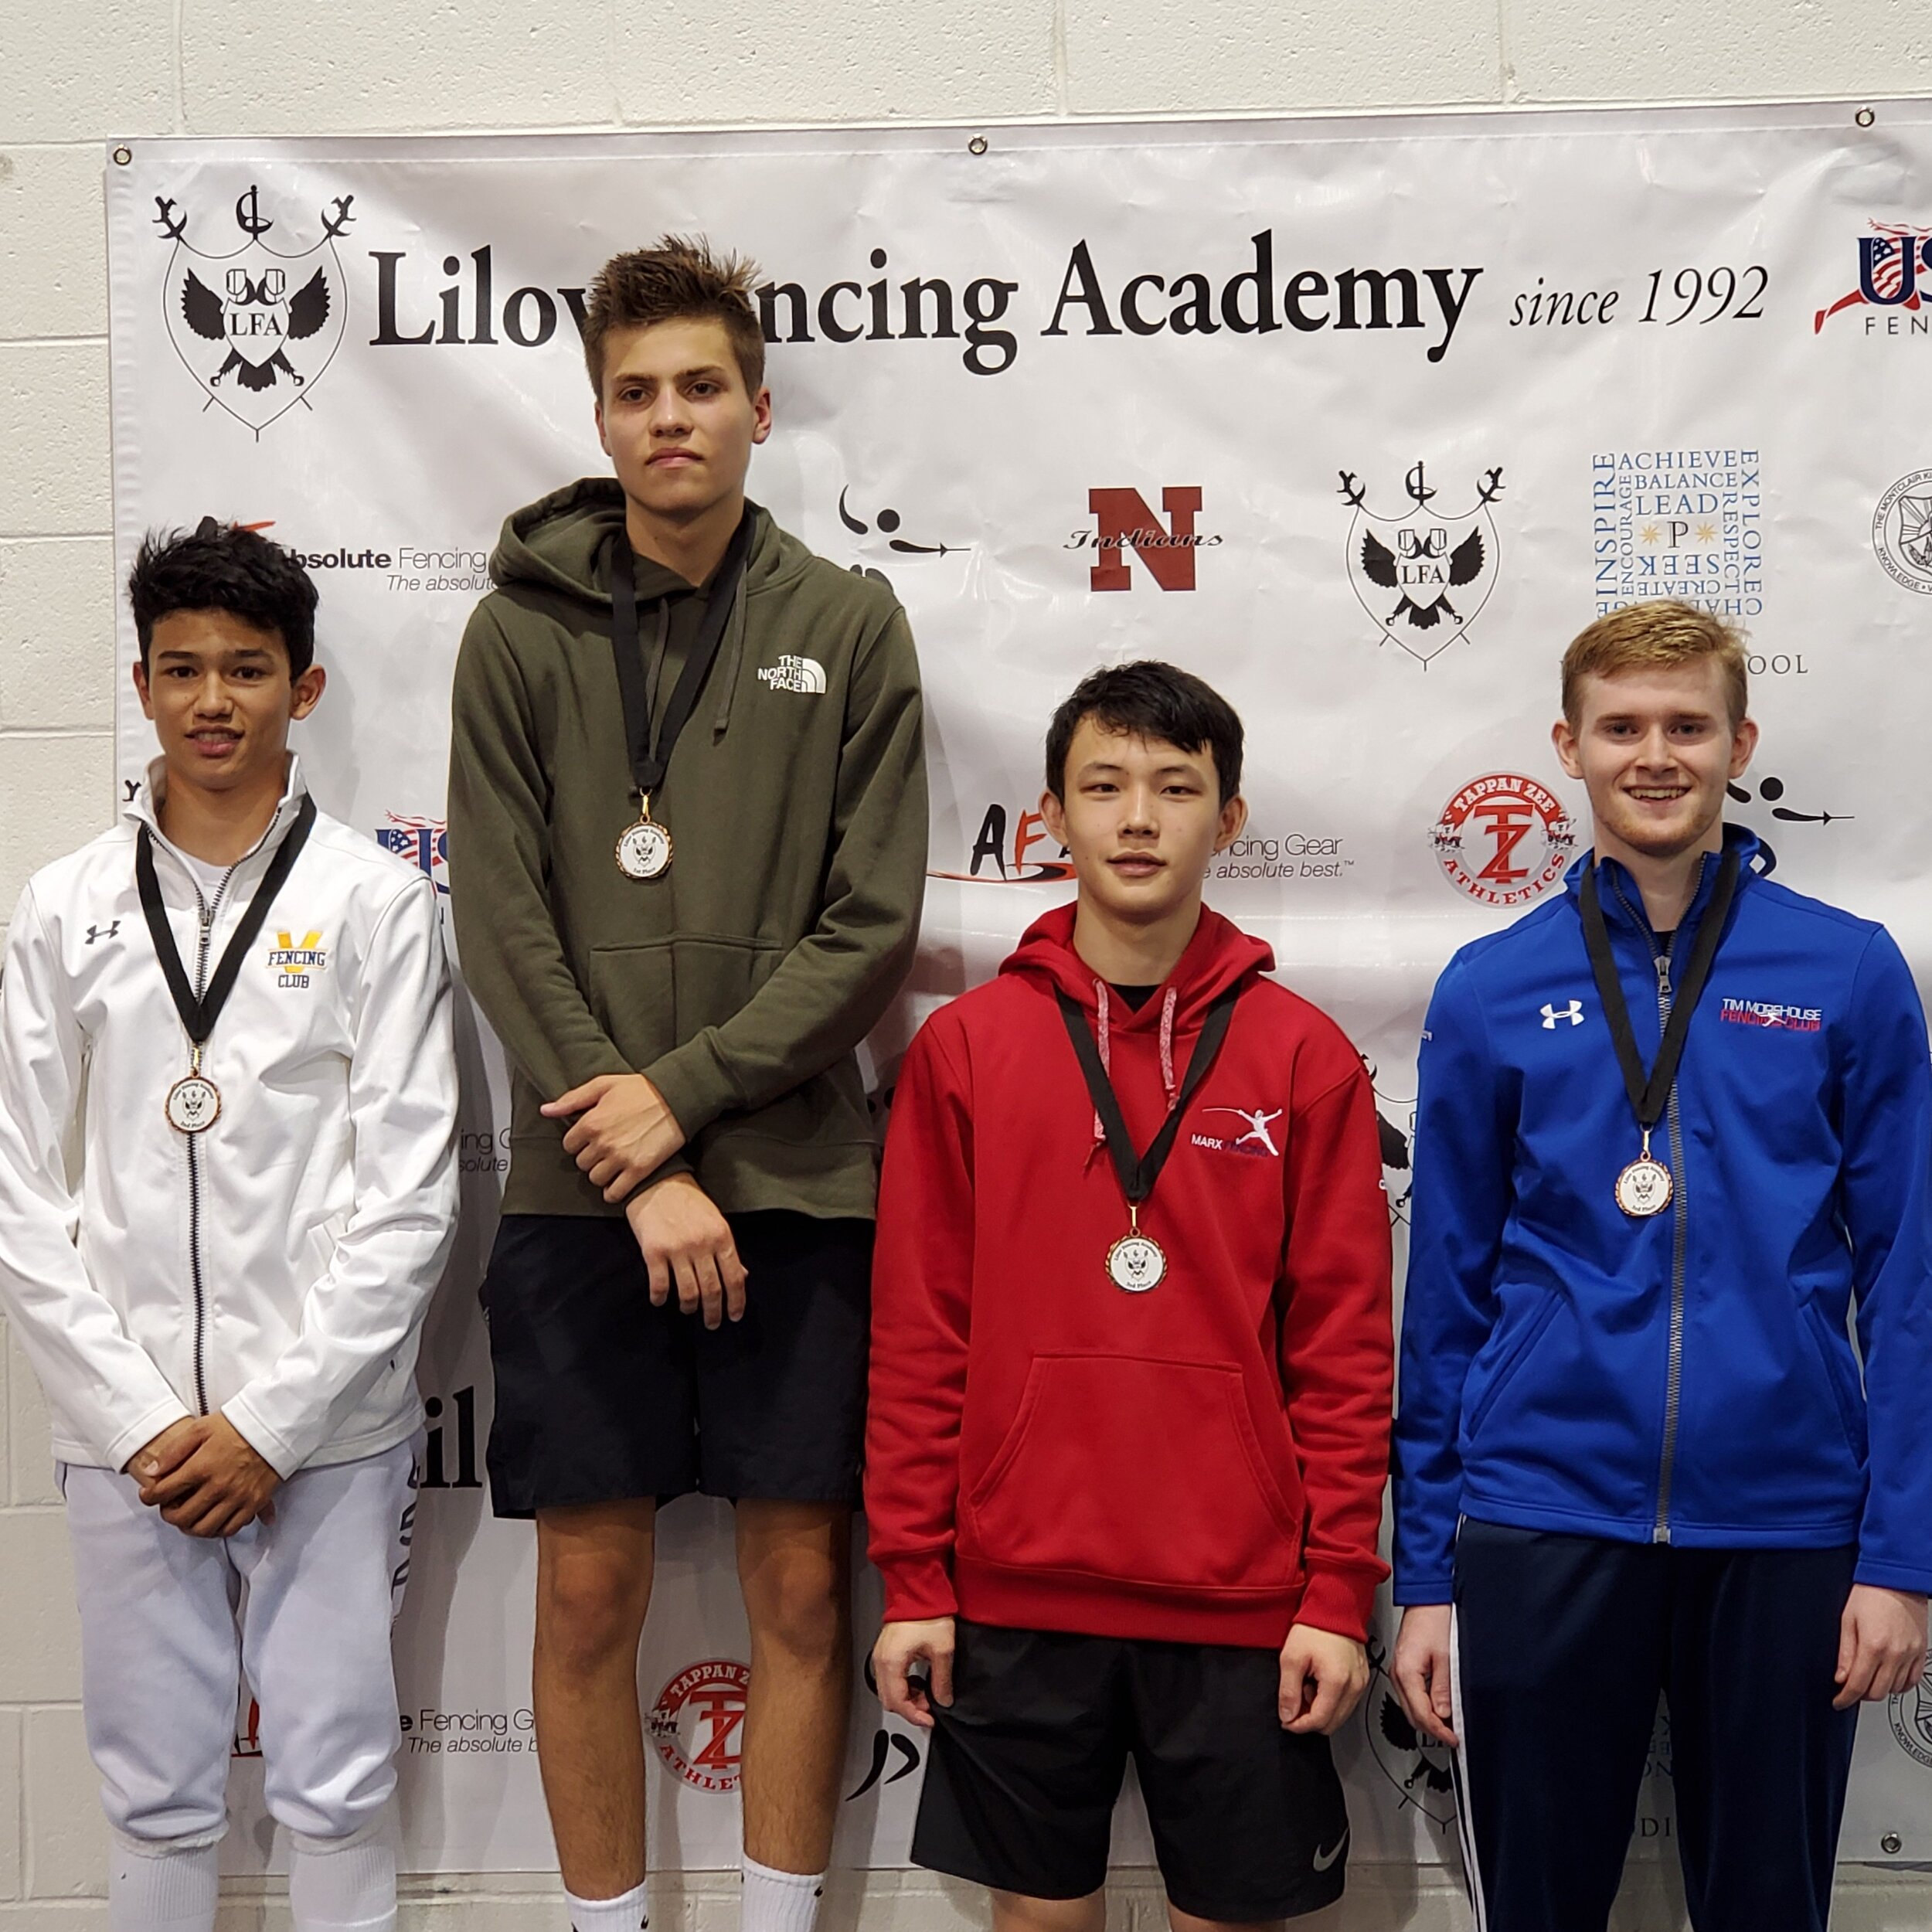 Pictured: Jake McGillion-Moore finished 3rd in DIV1A Men's Foil, earning his A19